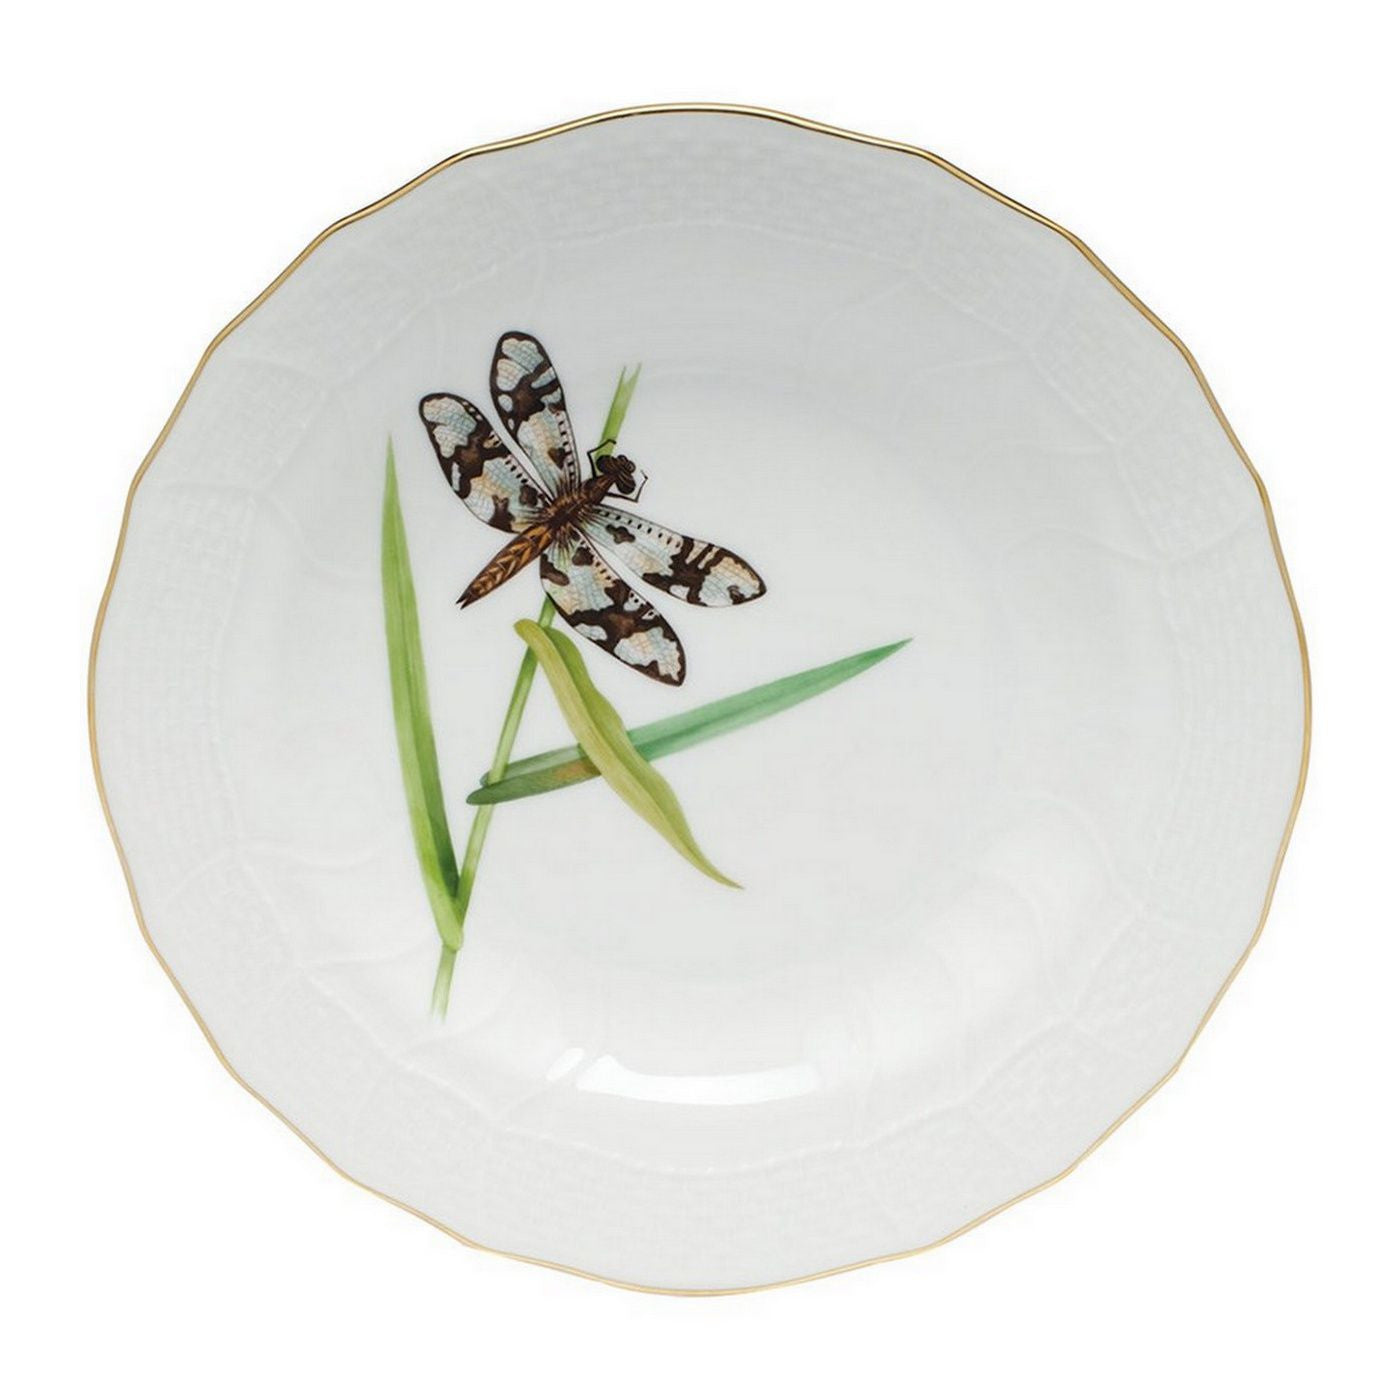 Brown Dragonfly Dessert Plate